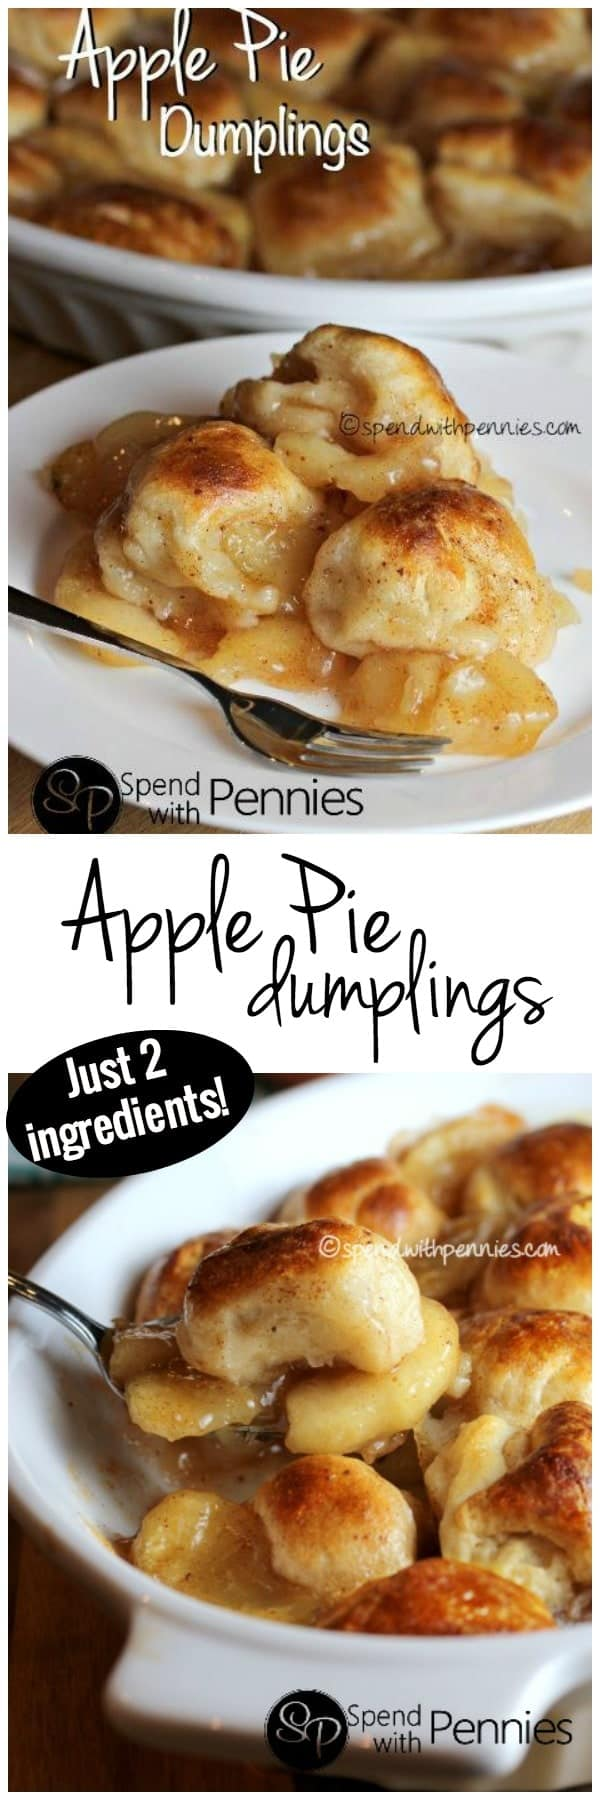 Apple Pie Dumplings! This delicious dessert has only TWO ingredients! I've made this so many times!!